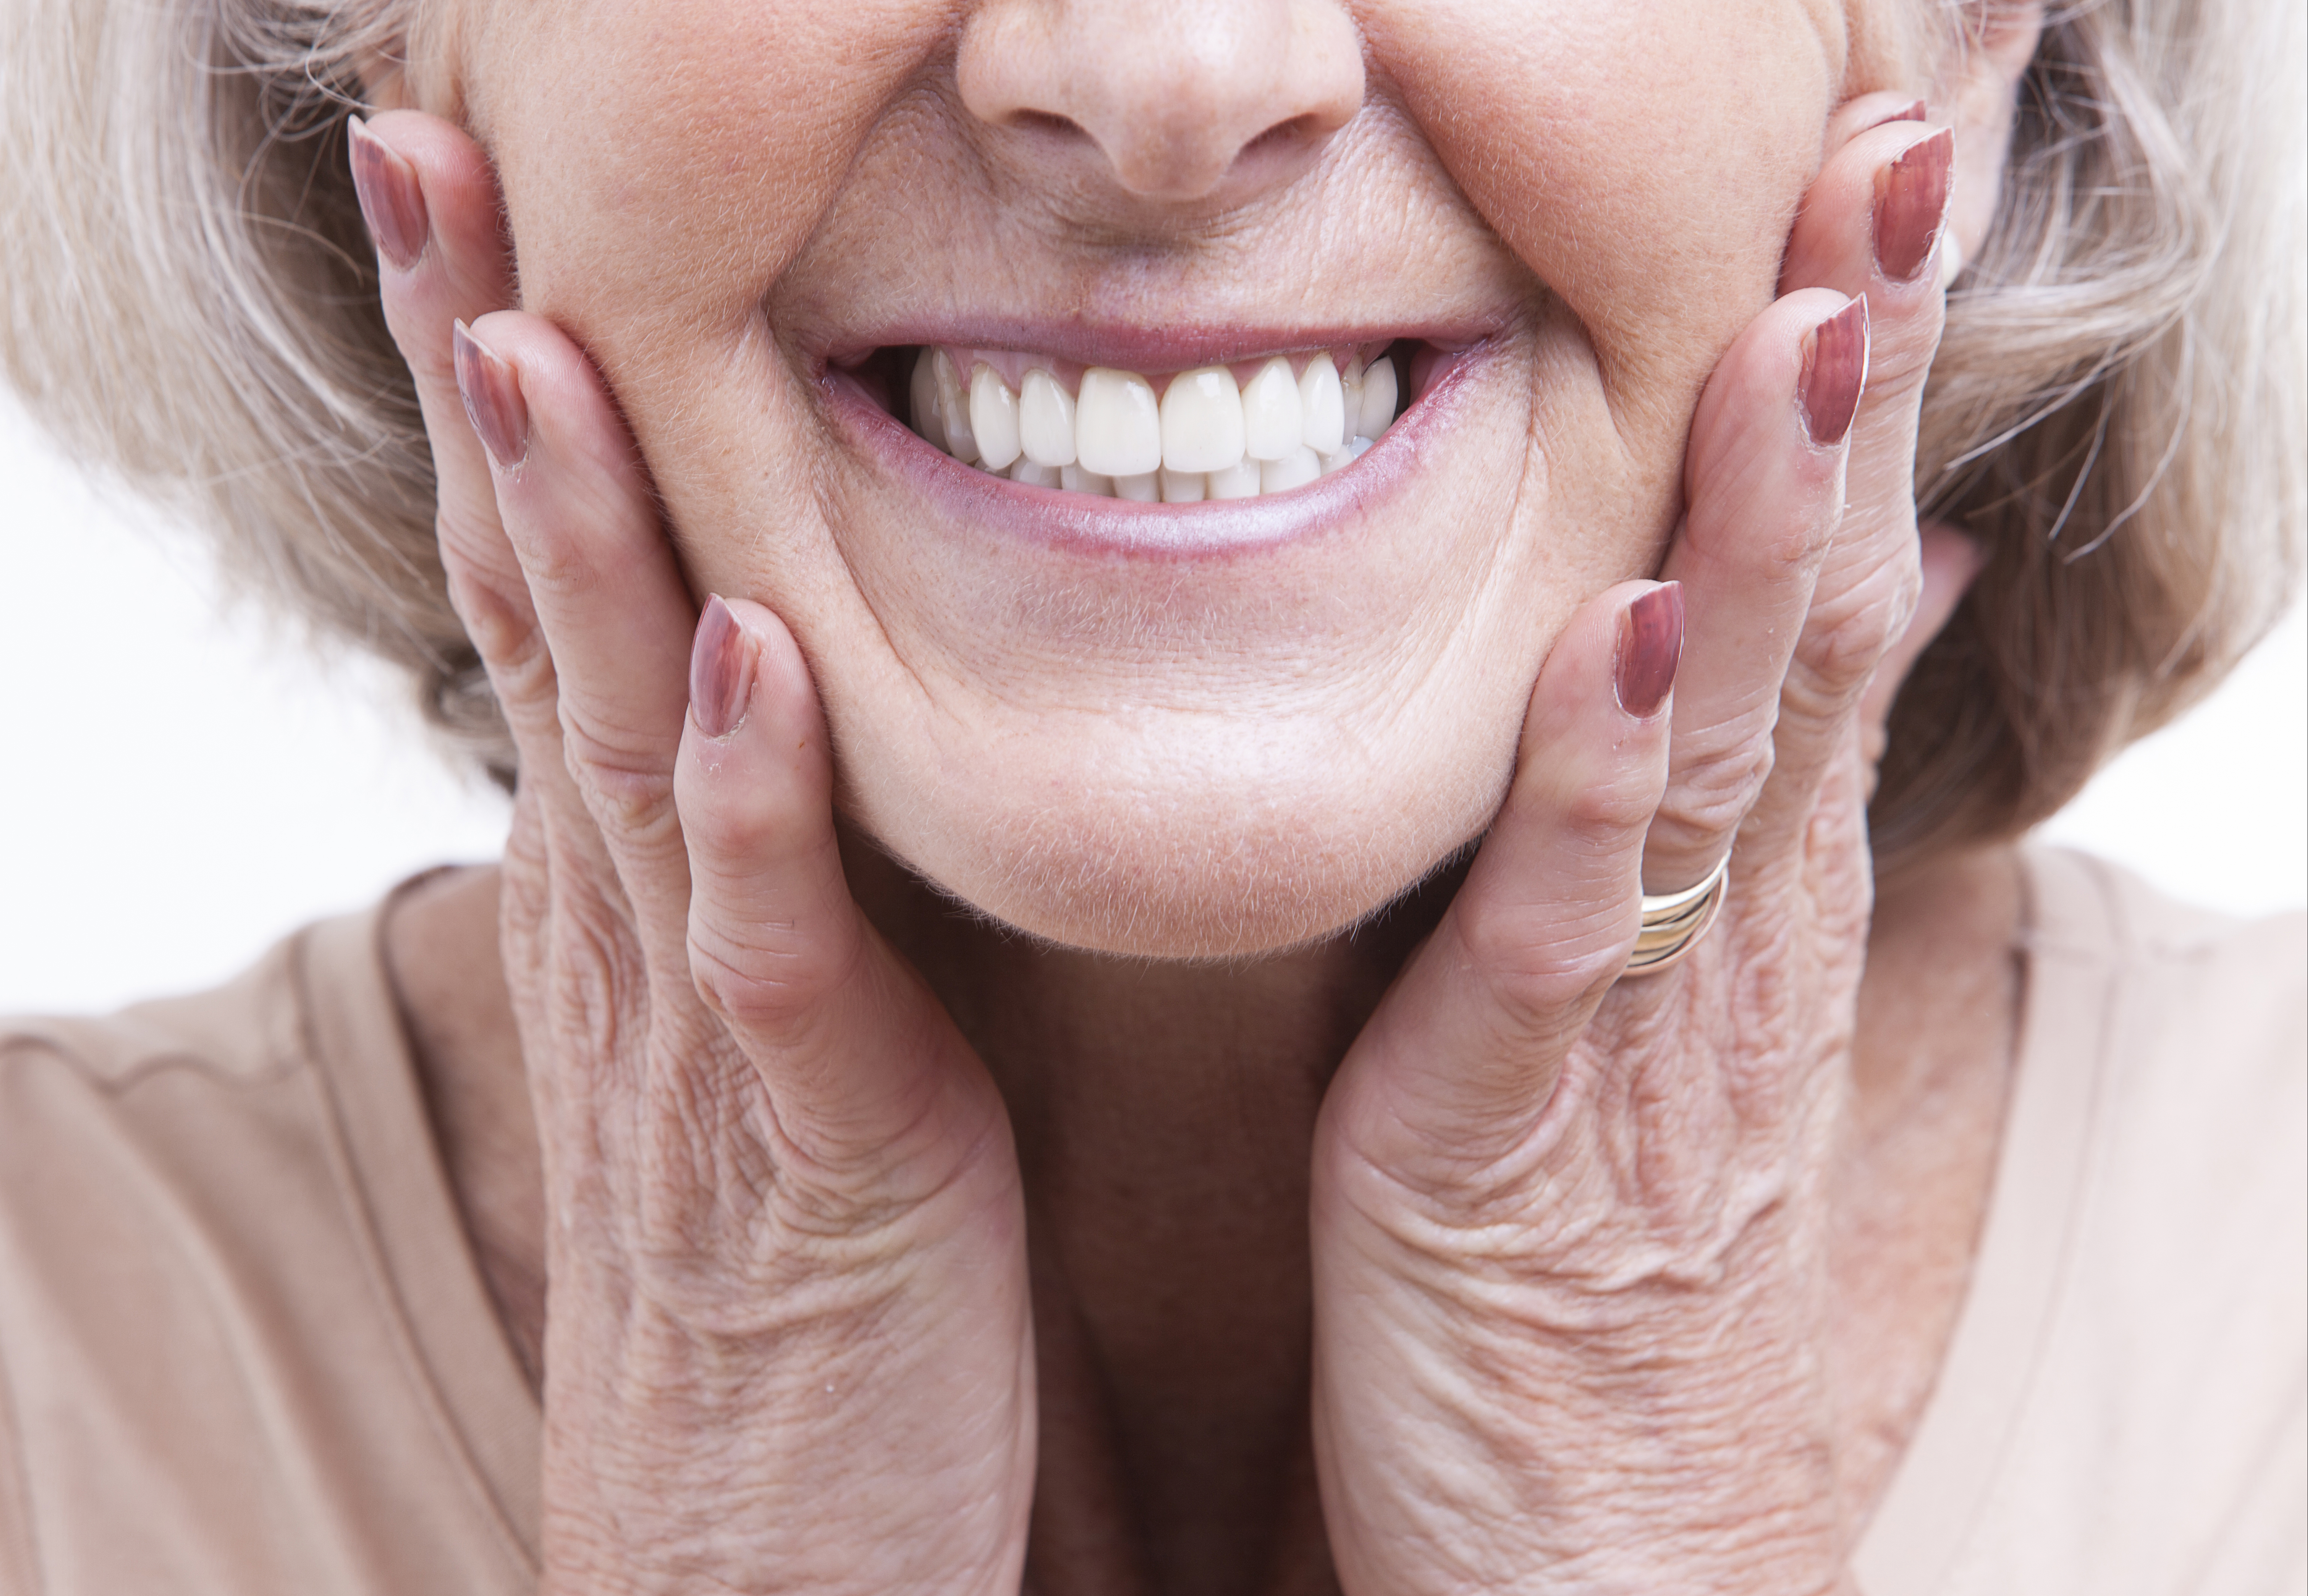 Mini Implants Palm Beach Gardens | Three Common Questions About Mini Implants